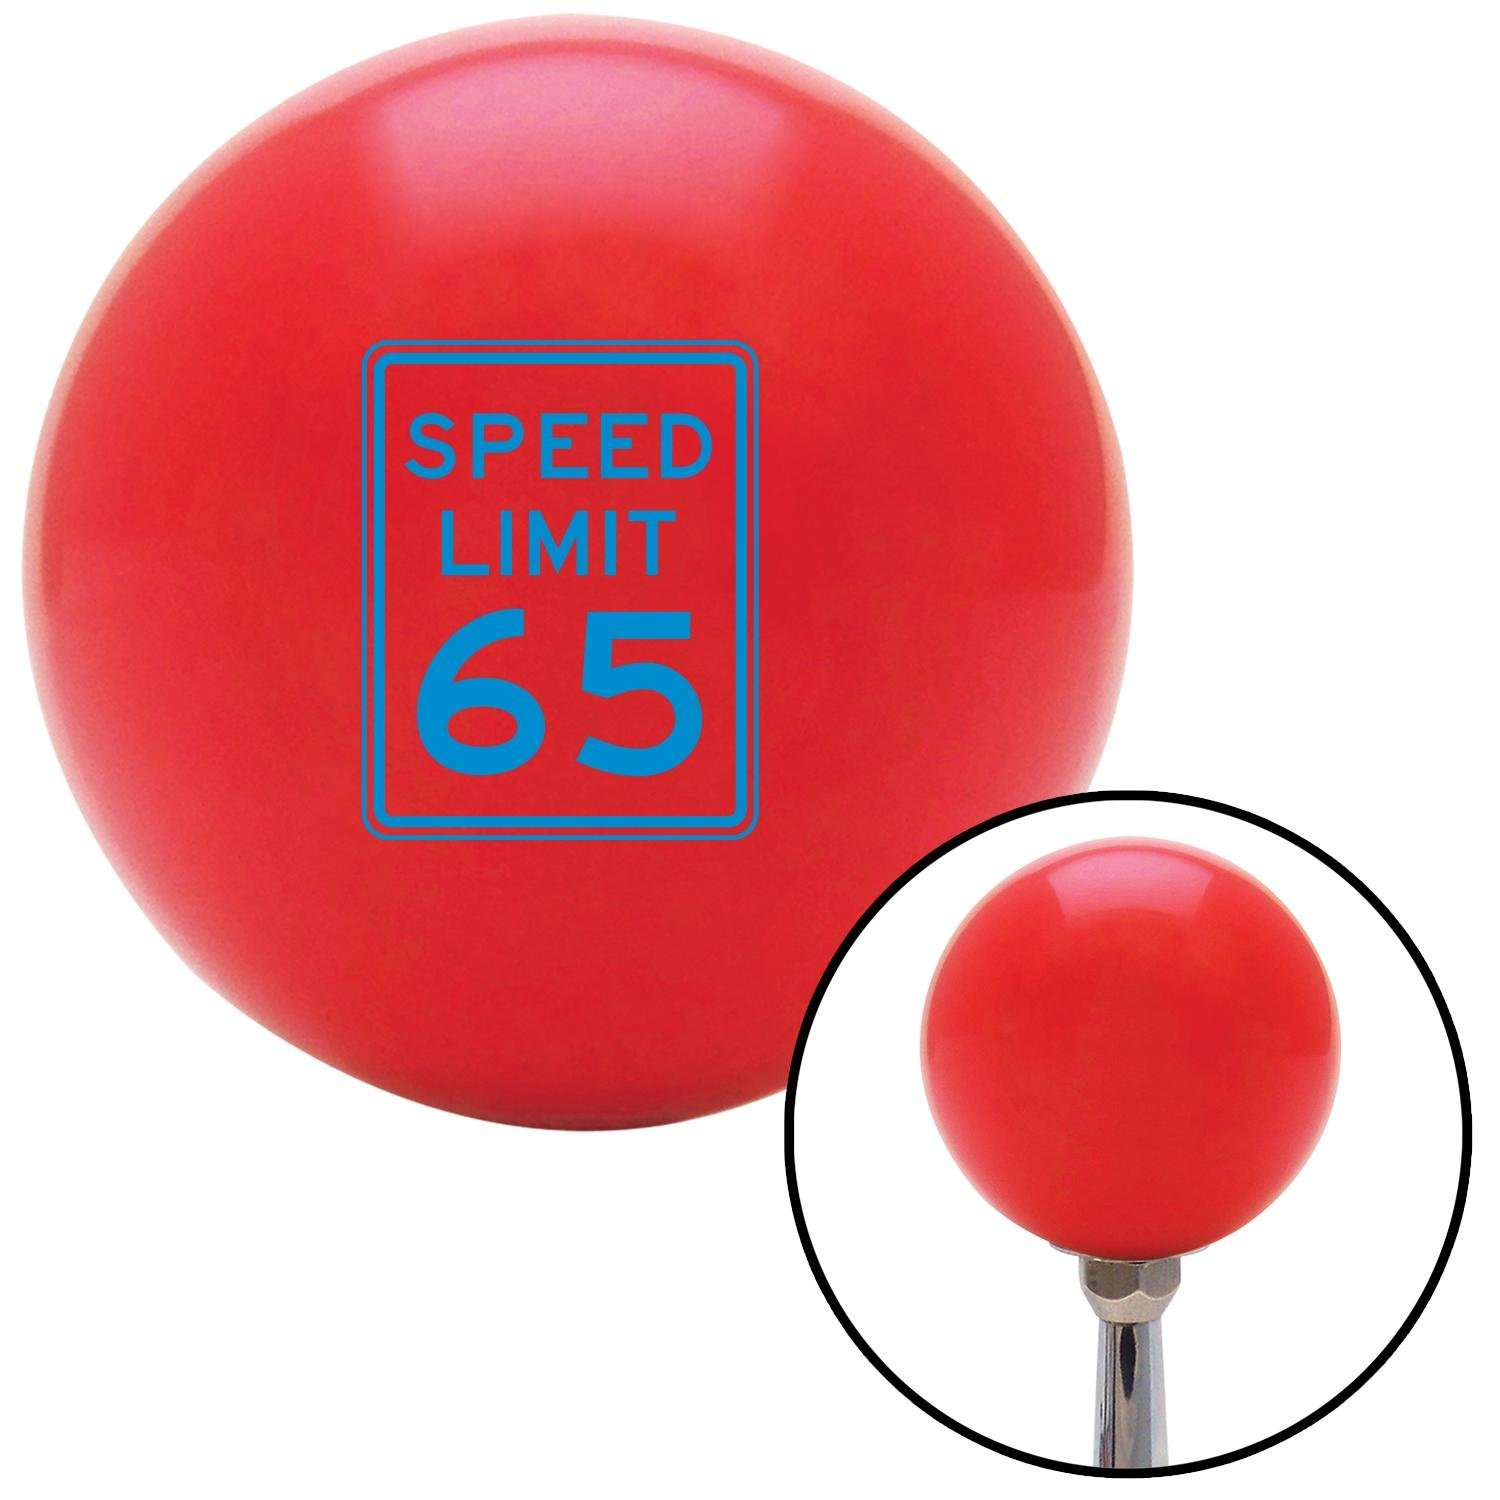 Blue Speed Limit 65 American Shifter 101923 Red Shift Knob with M16 x 1.5 Insert